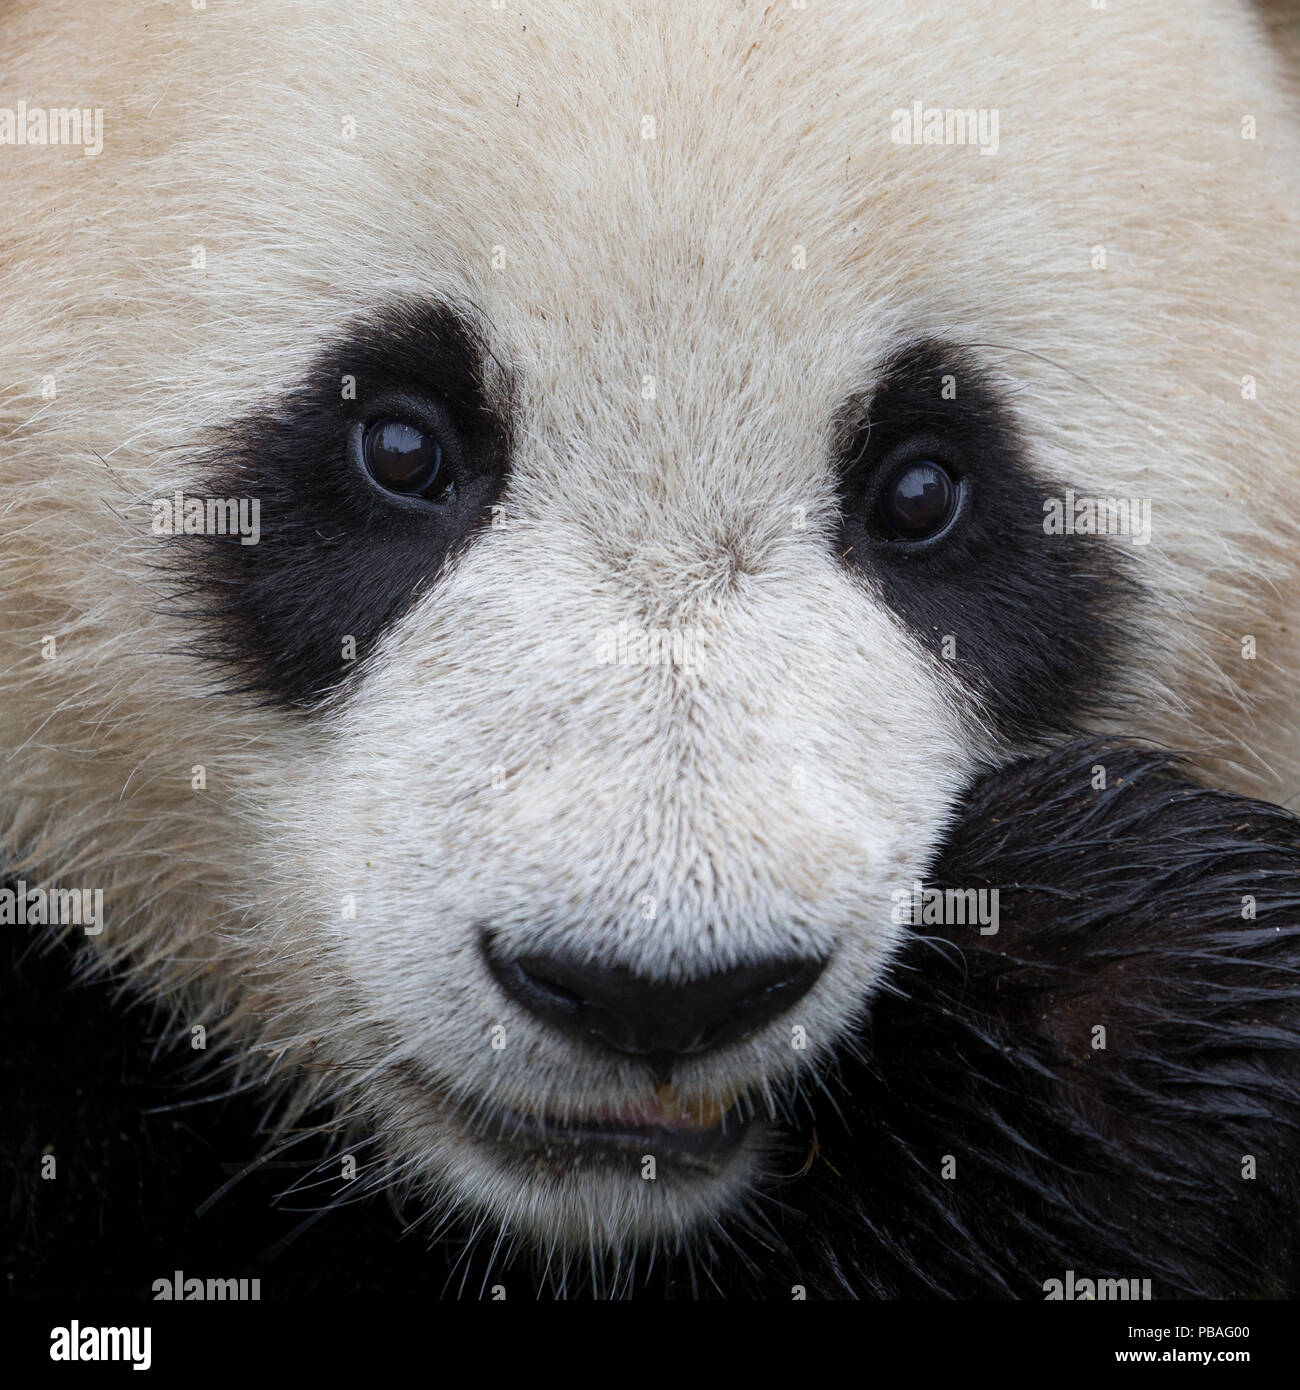 Giant Panda (Ailuropoda melanoleuca) face close up captive, China - Stock Image